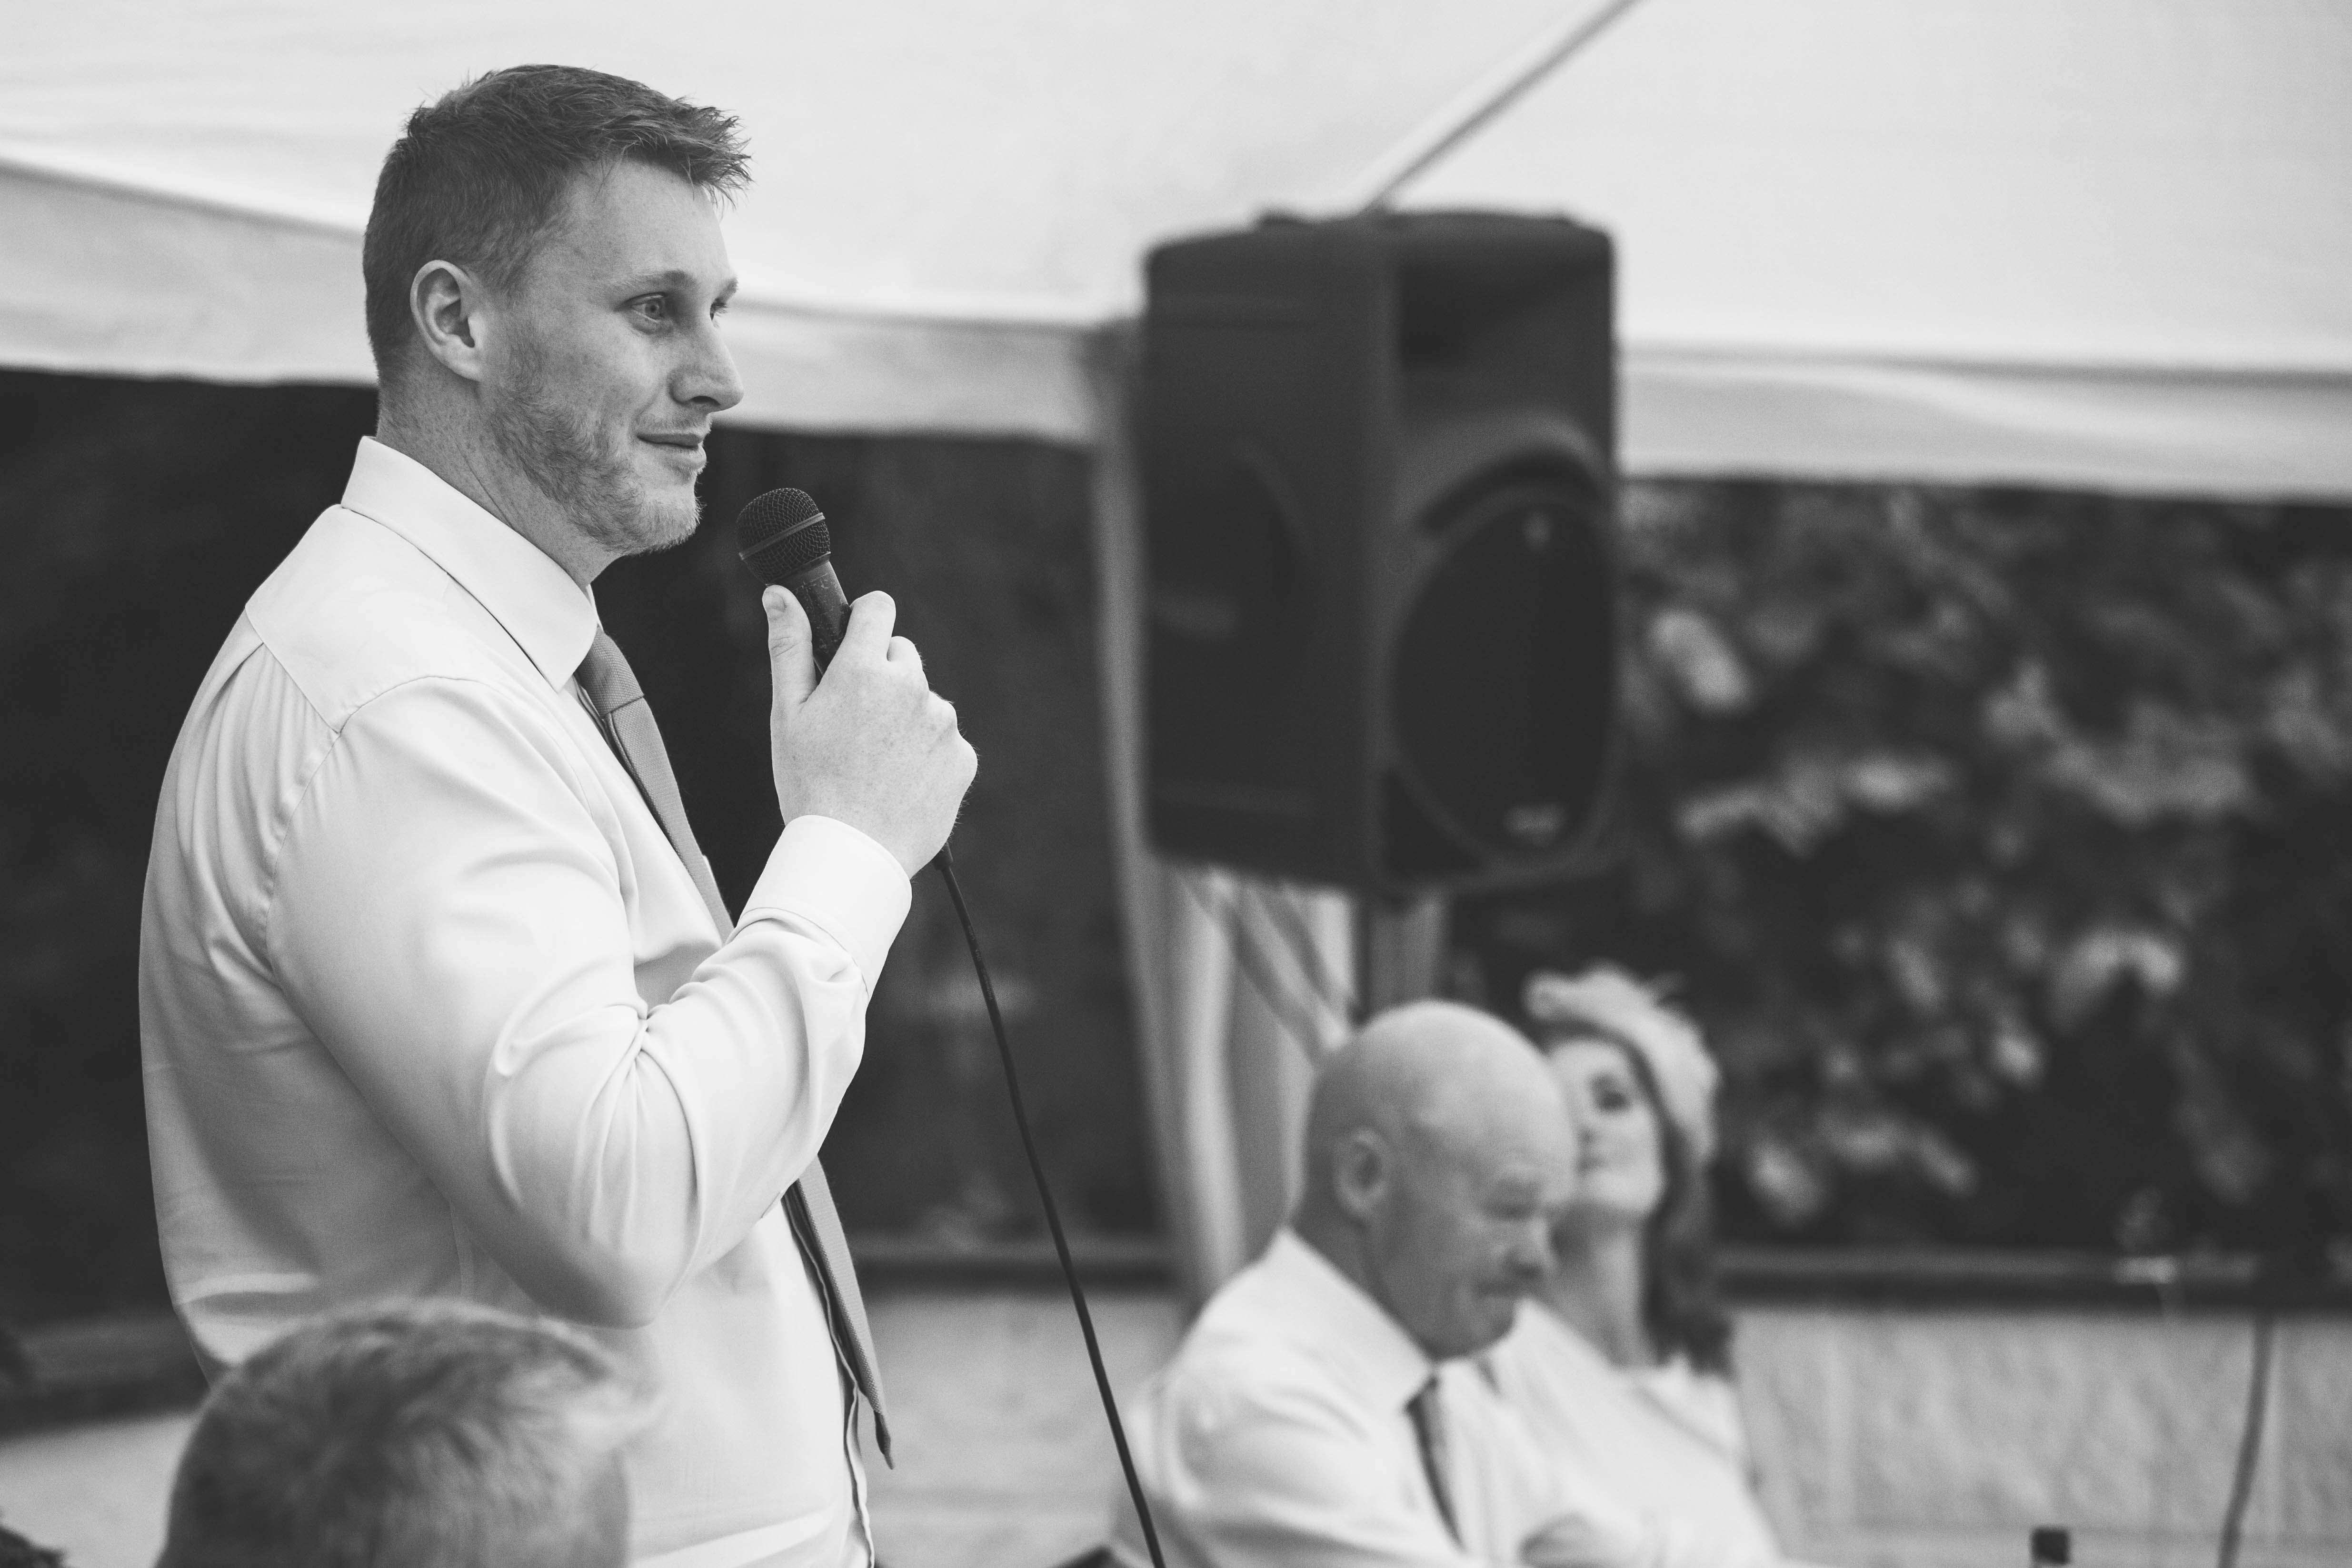 The groom gives his speech at a Birmingham Wedding